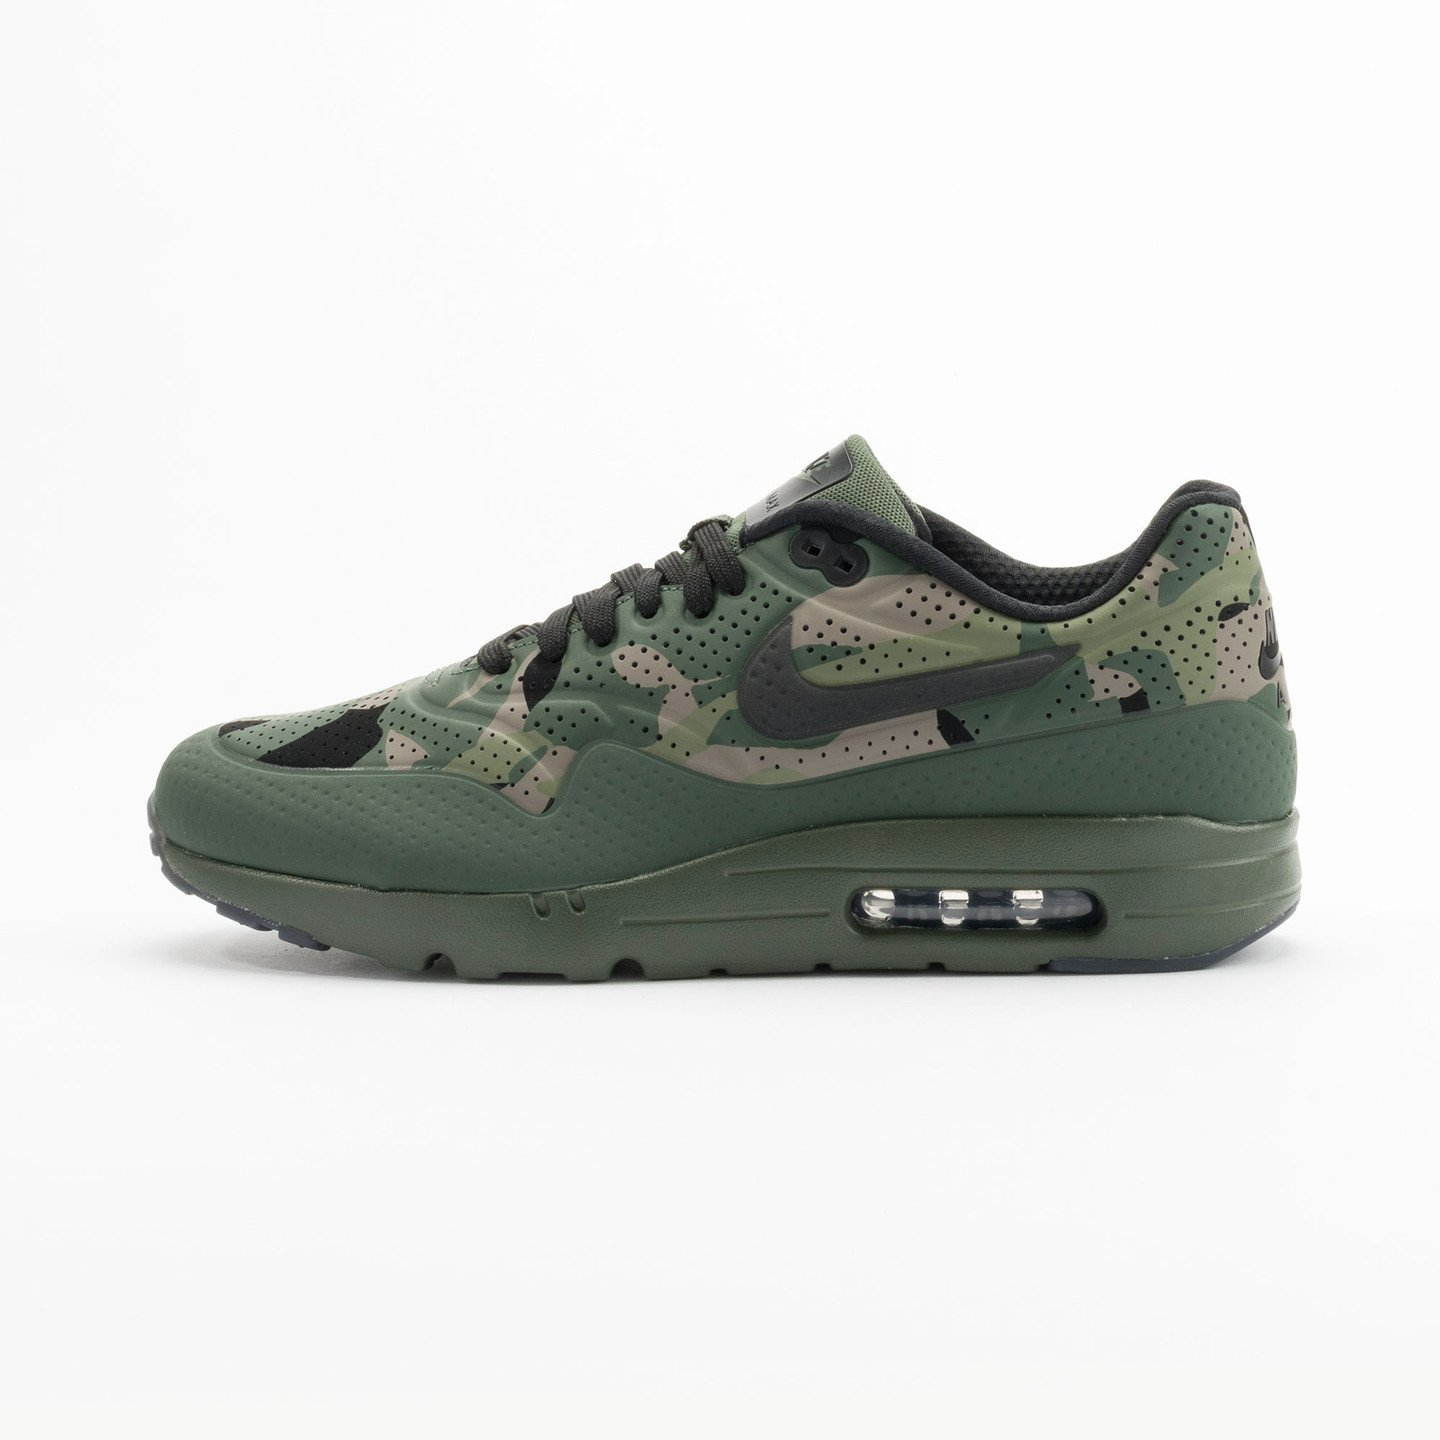 Nike Air Max 1 Ultra Moire Print Camouflage / Carbon Green 806851-300-43